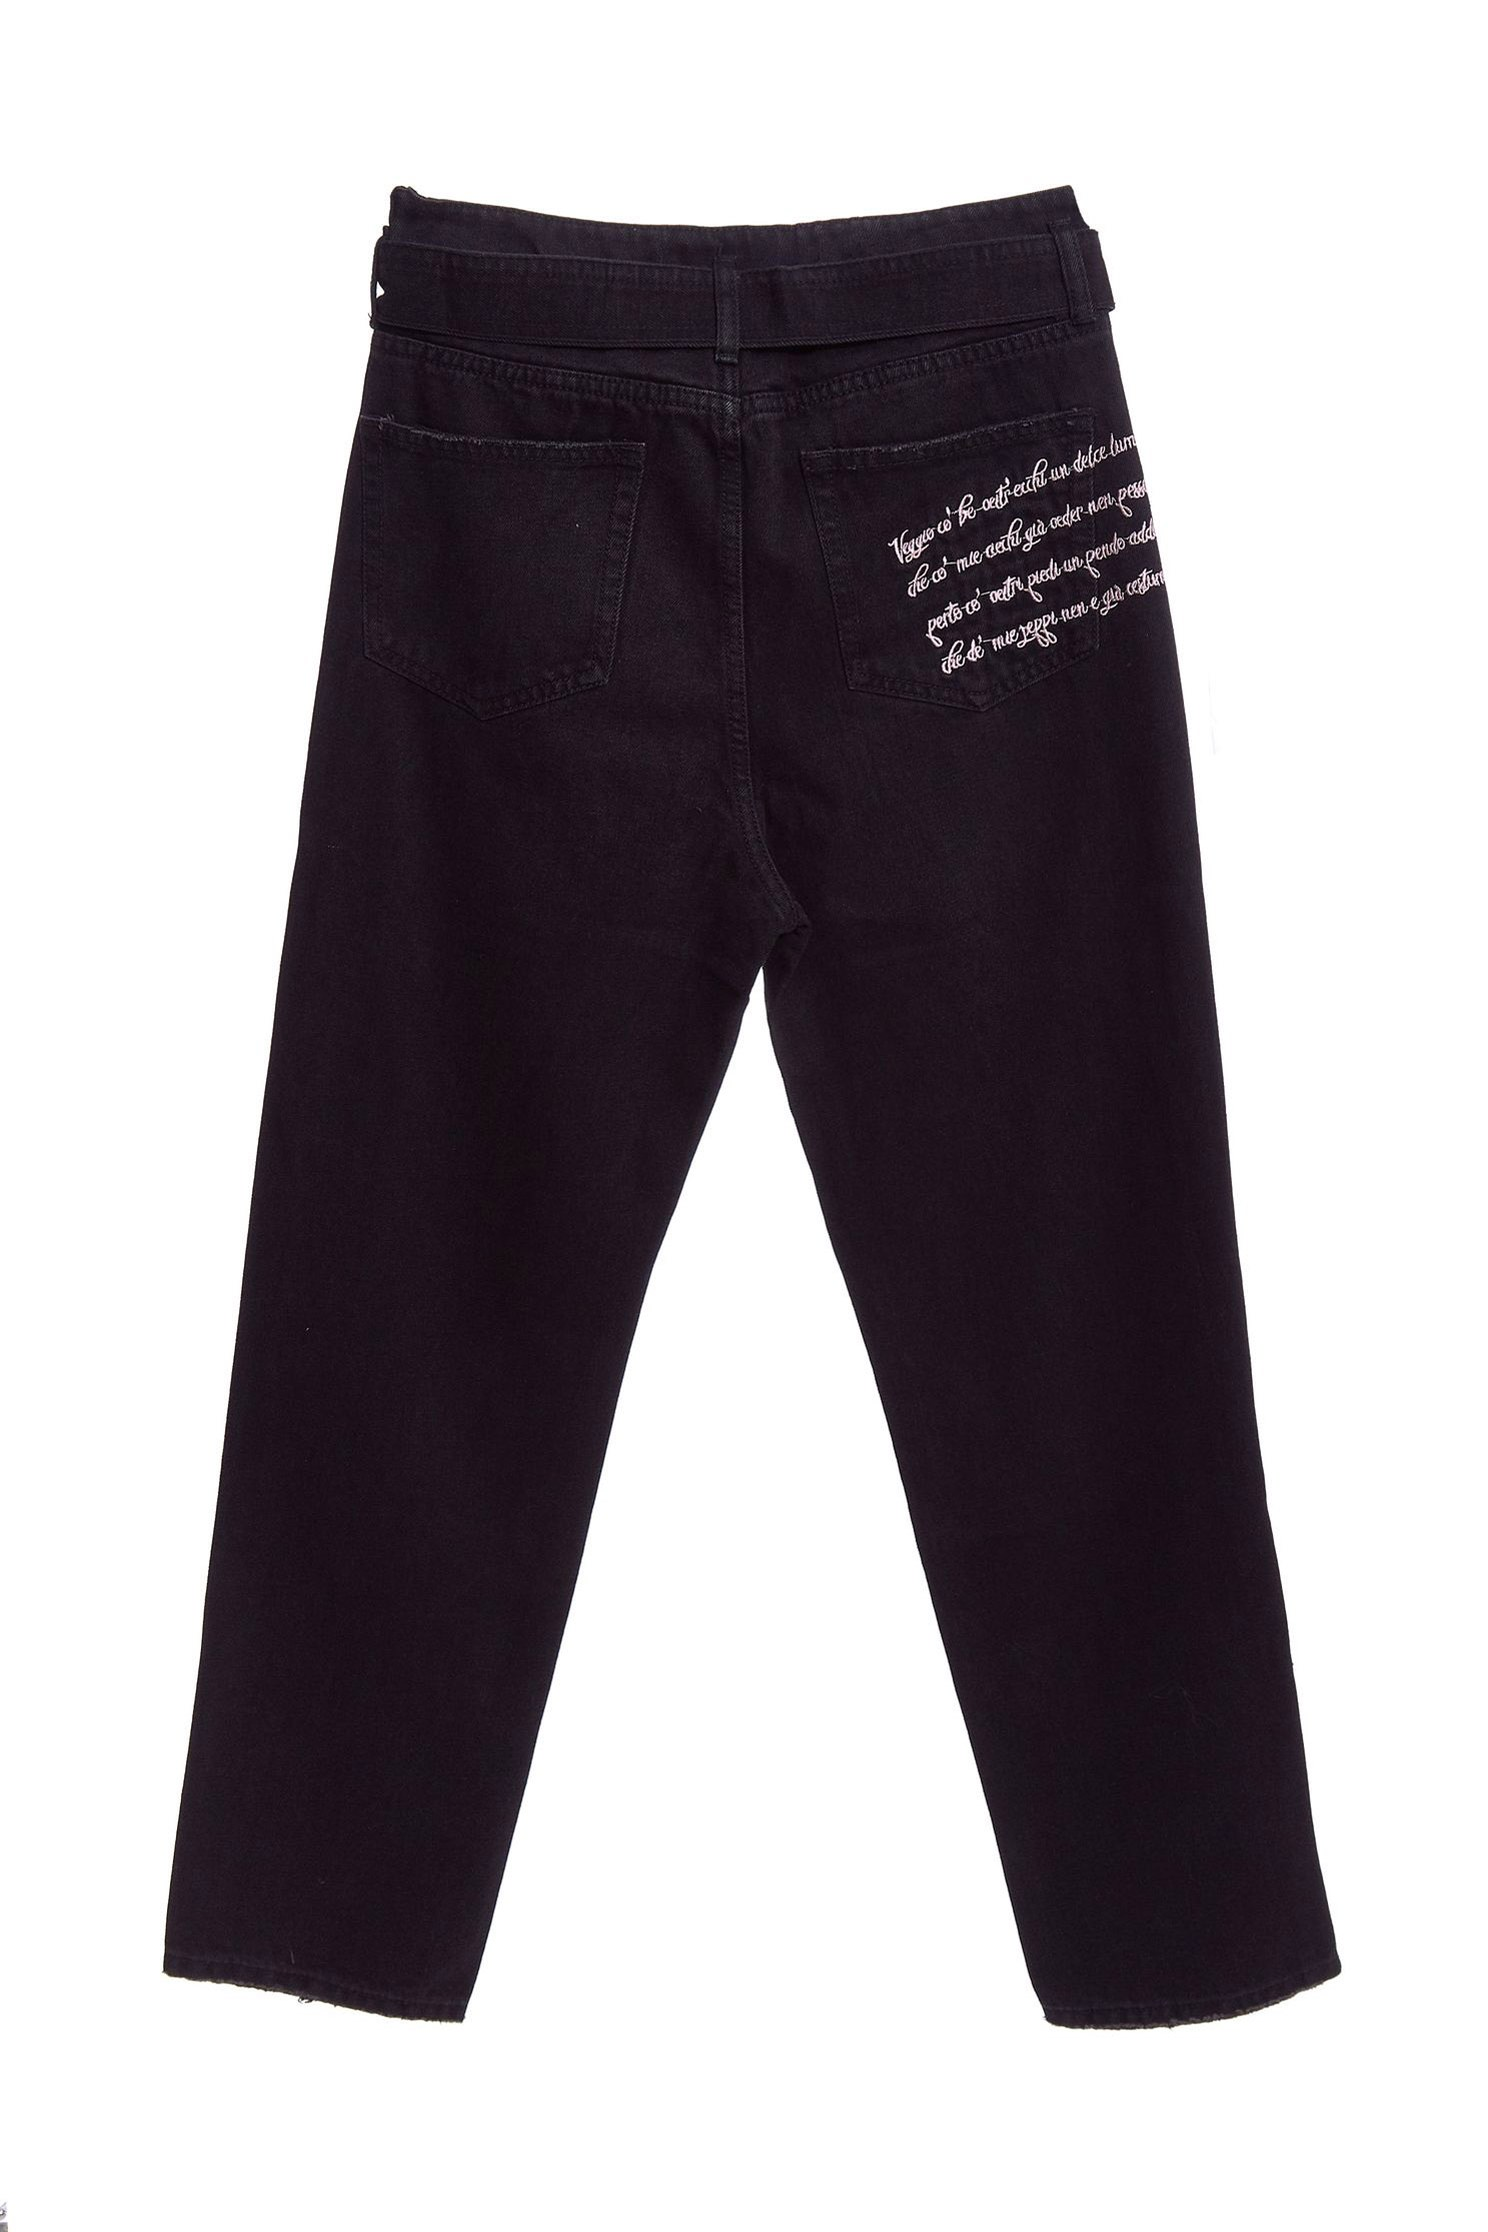 Back pocket embroidered with strap denim trousers,Tanning,embroidery,cowboy,Jeans,Women's denim trousers,embroidered,長褲,Black jeans,Black trousers